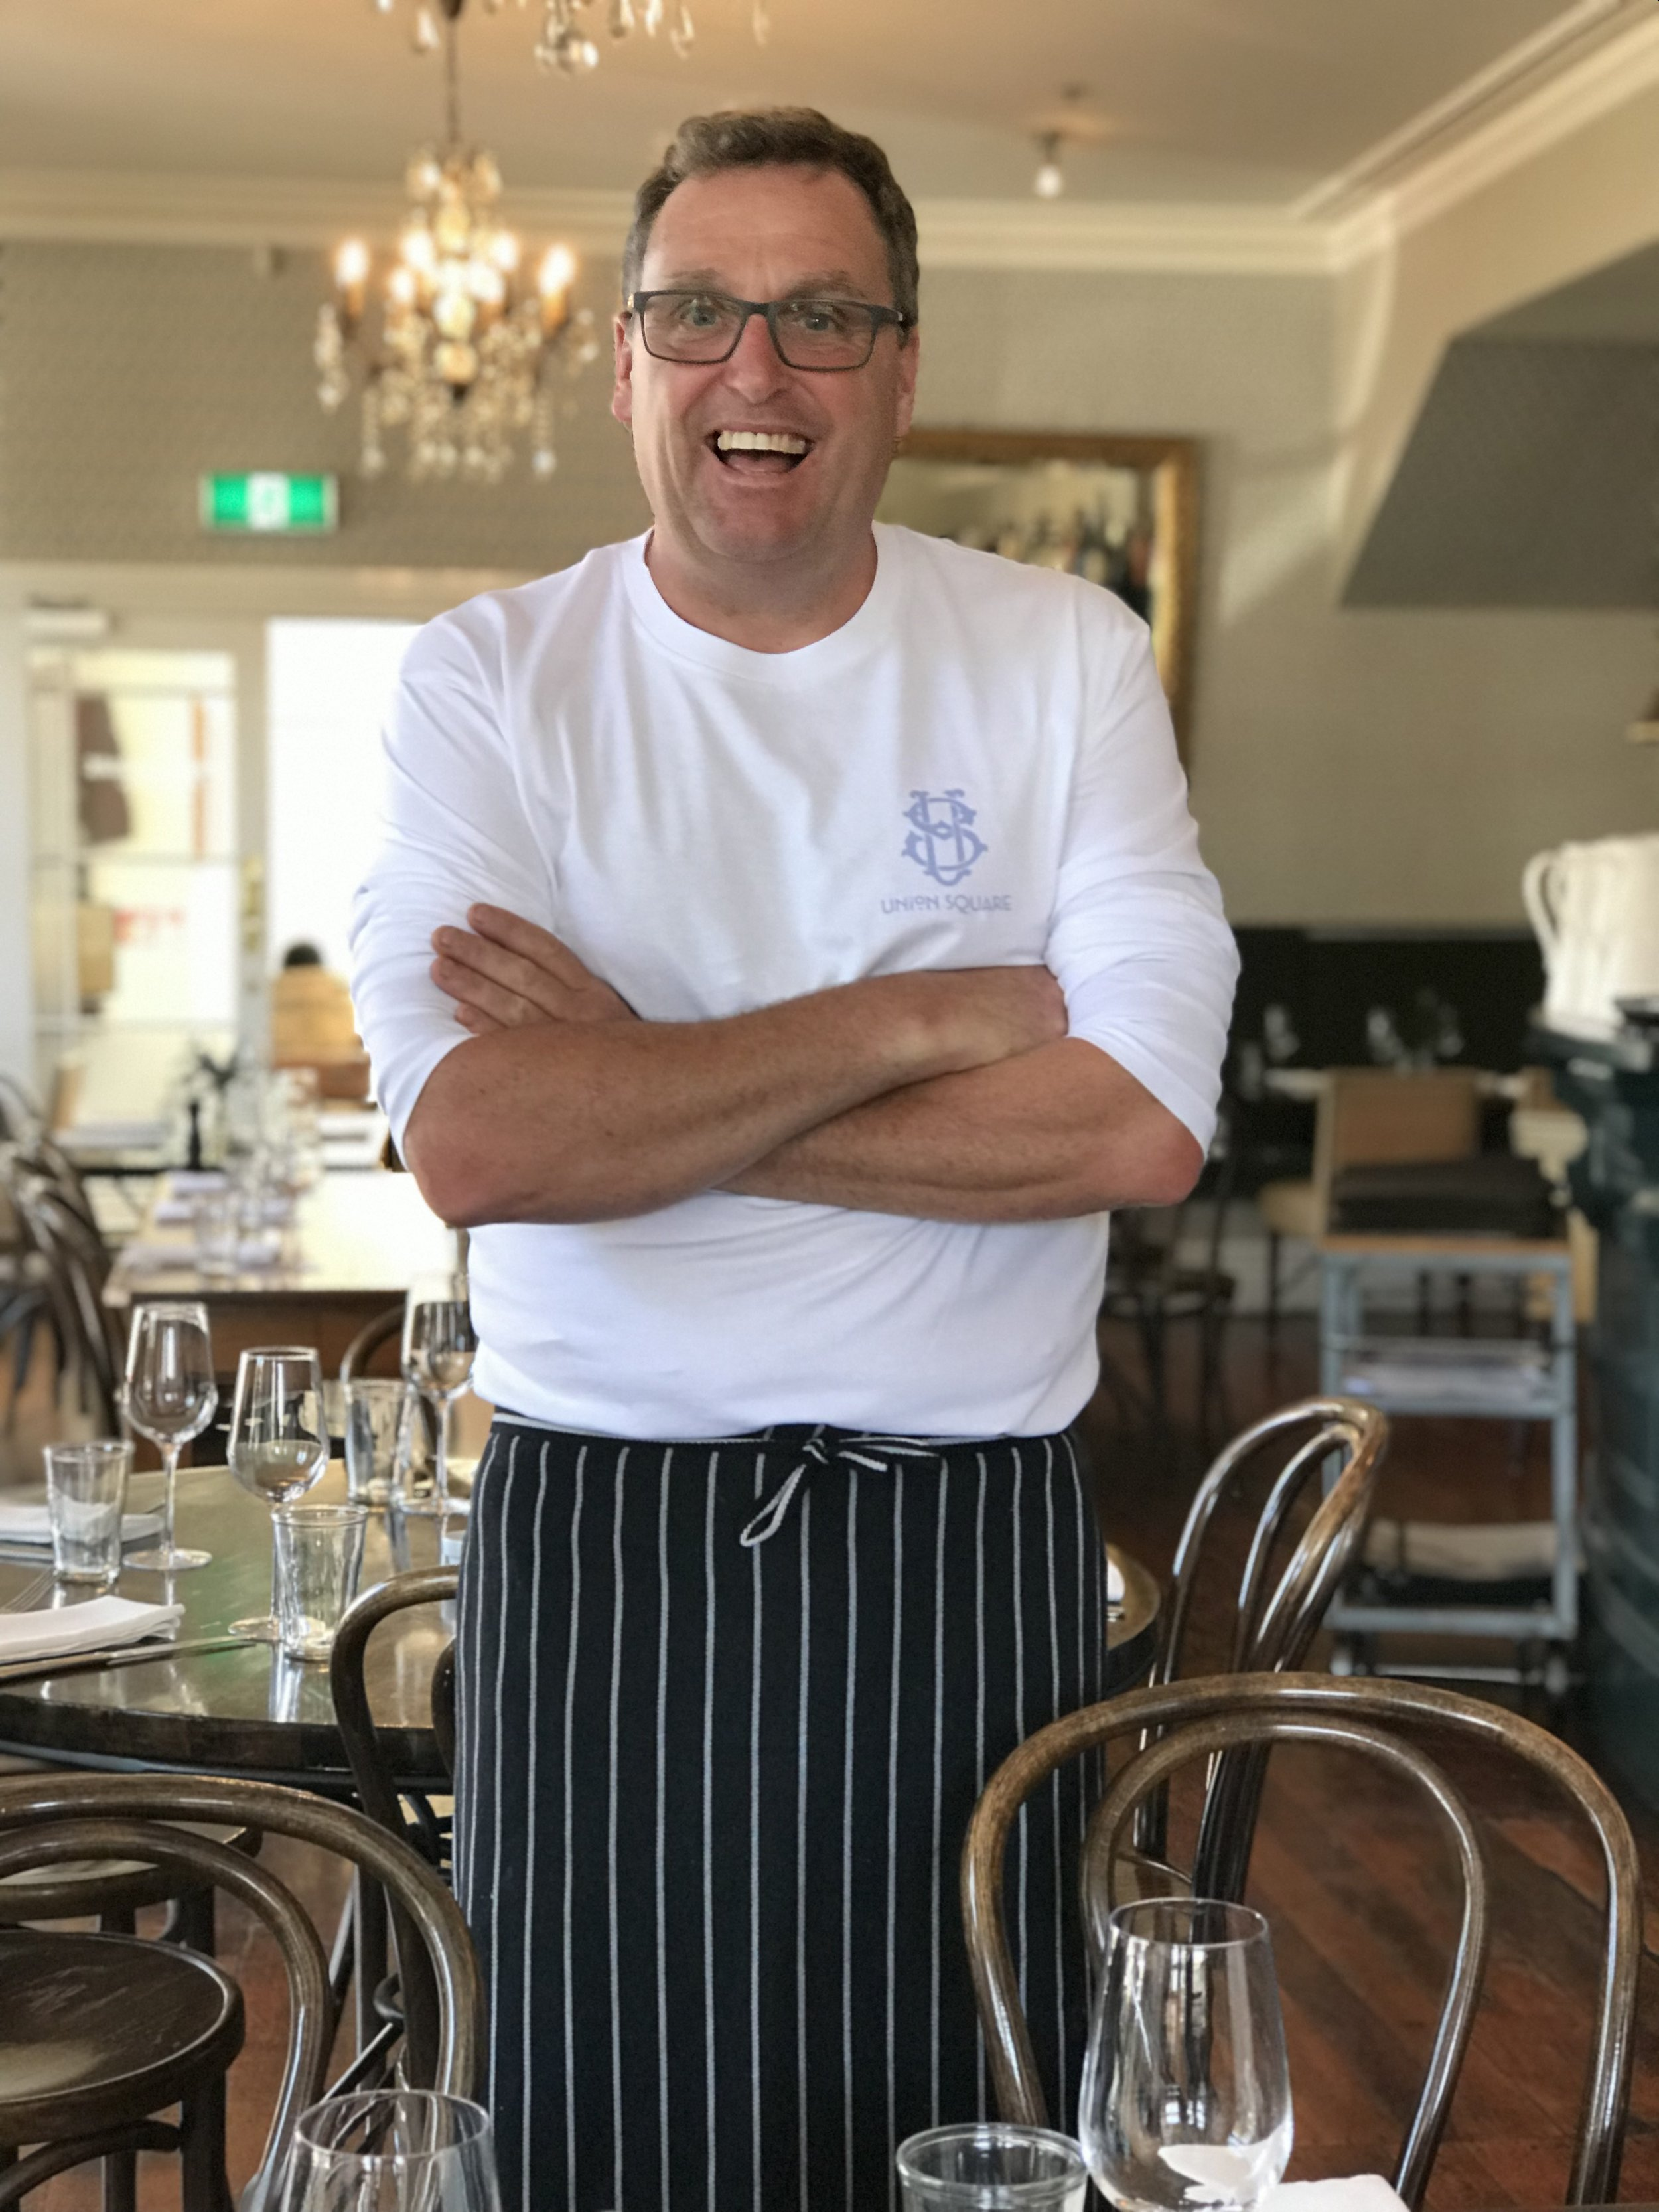 Chef Adam Newell (image by Jacqui Gibson).